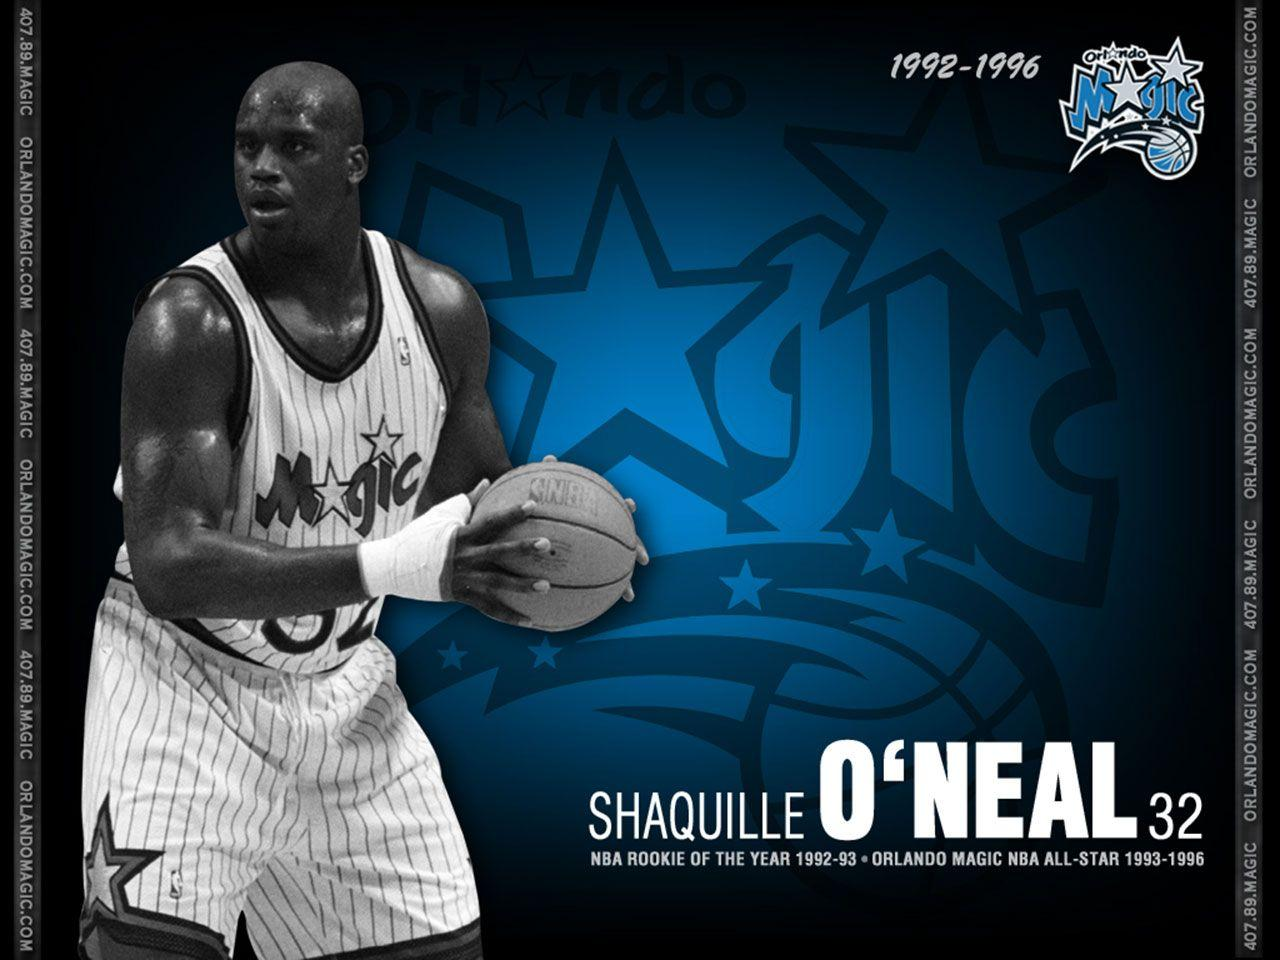 Shaquille O'Neal Professional Basketball Player : Basketball